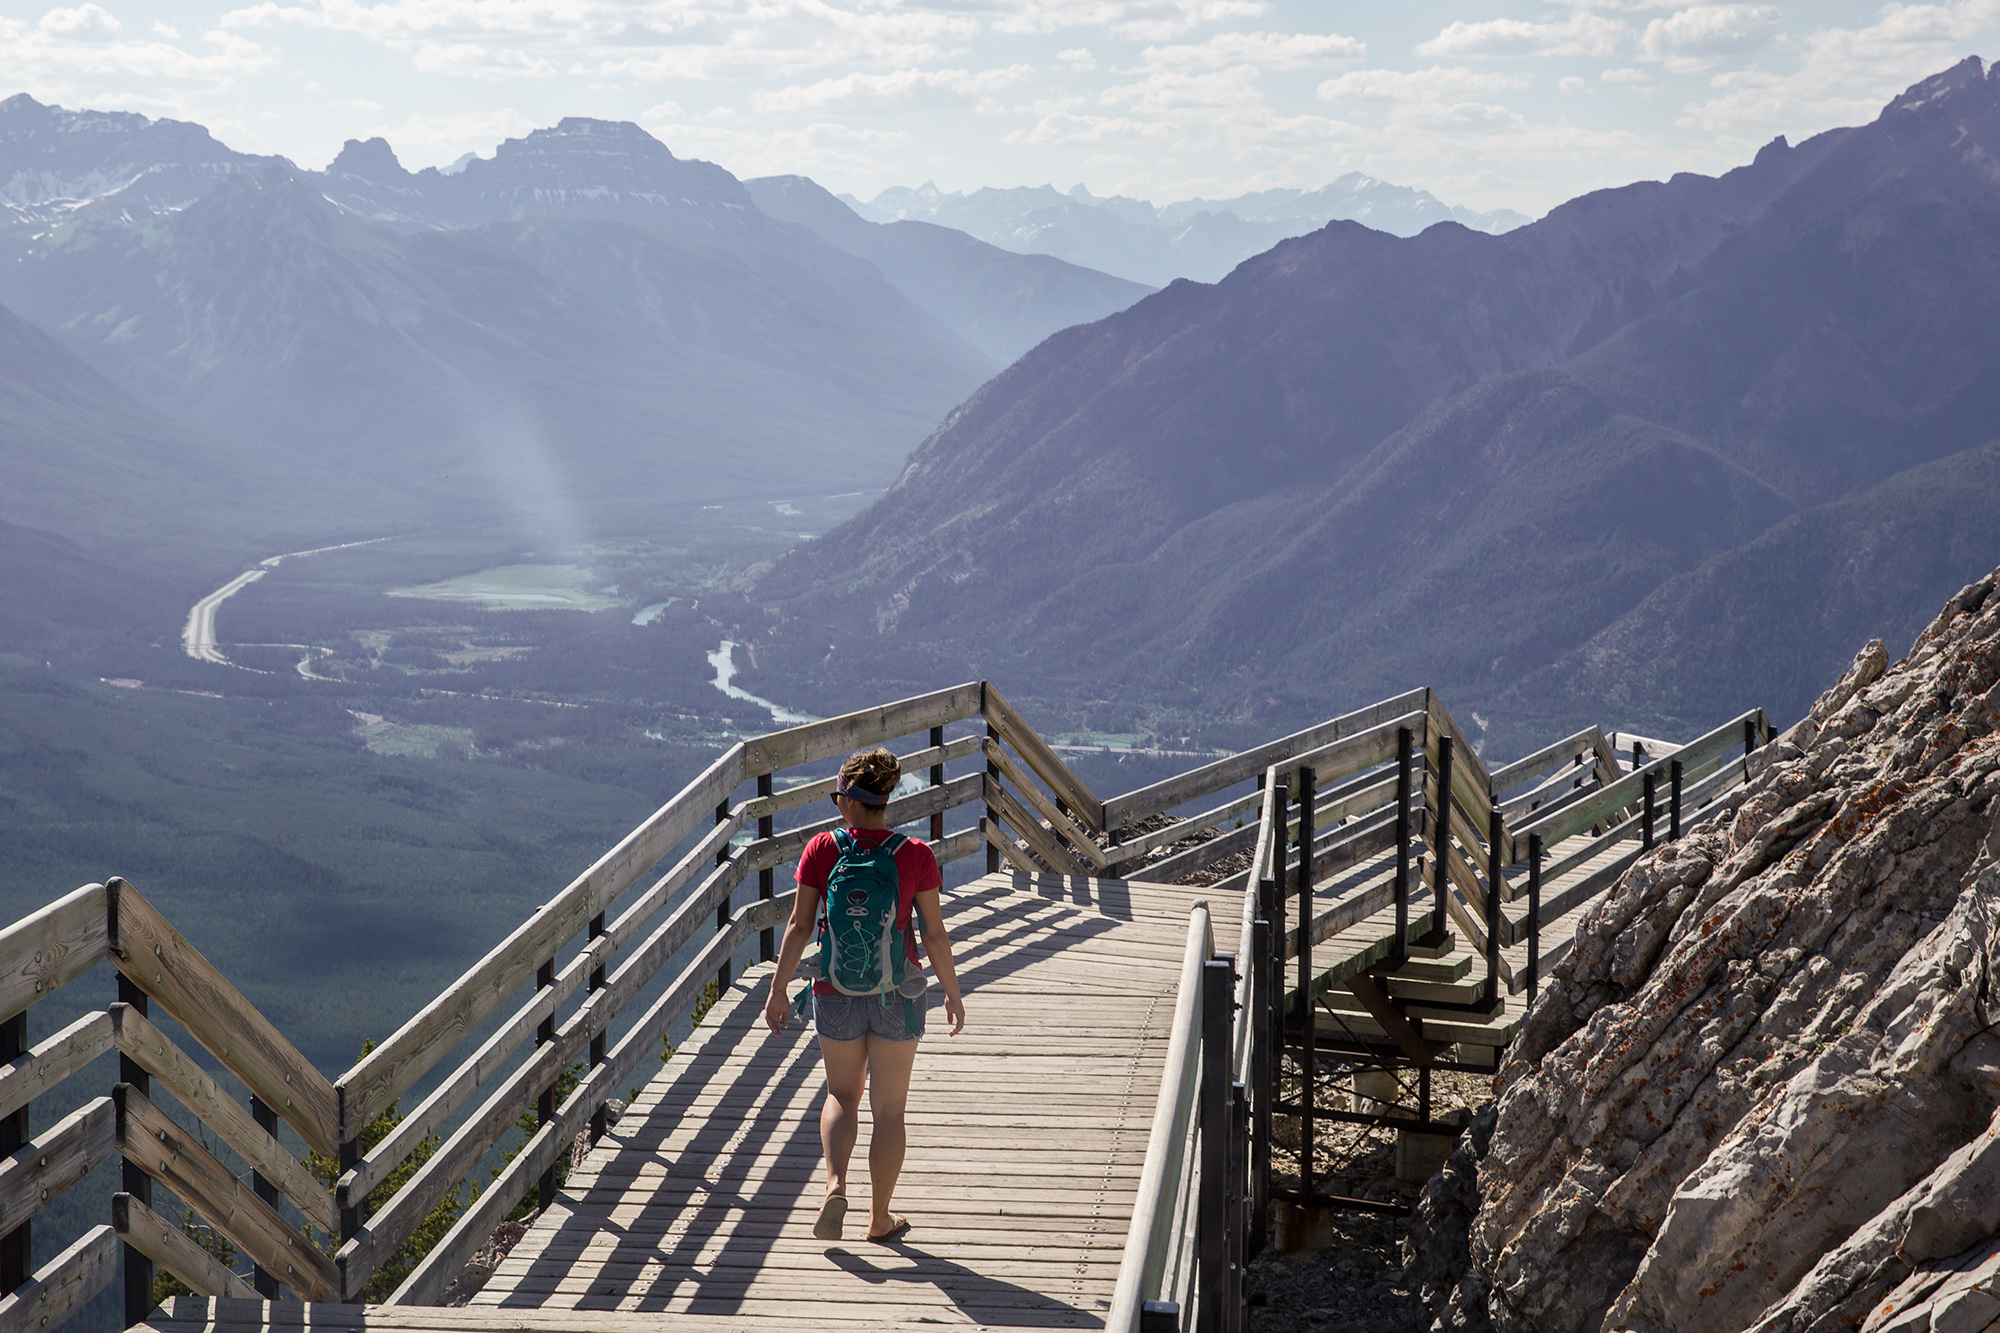 Britnee walks the trail at the top of Sulphur Mountain after taking the Banff Gondola up to enjoy the spectacular views.